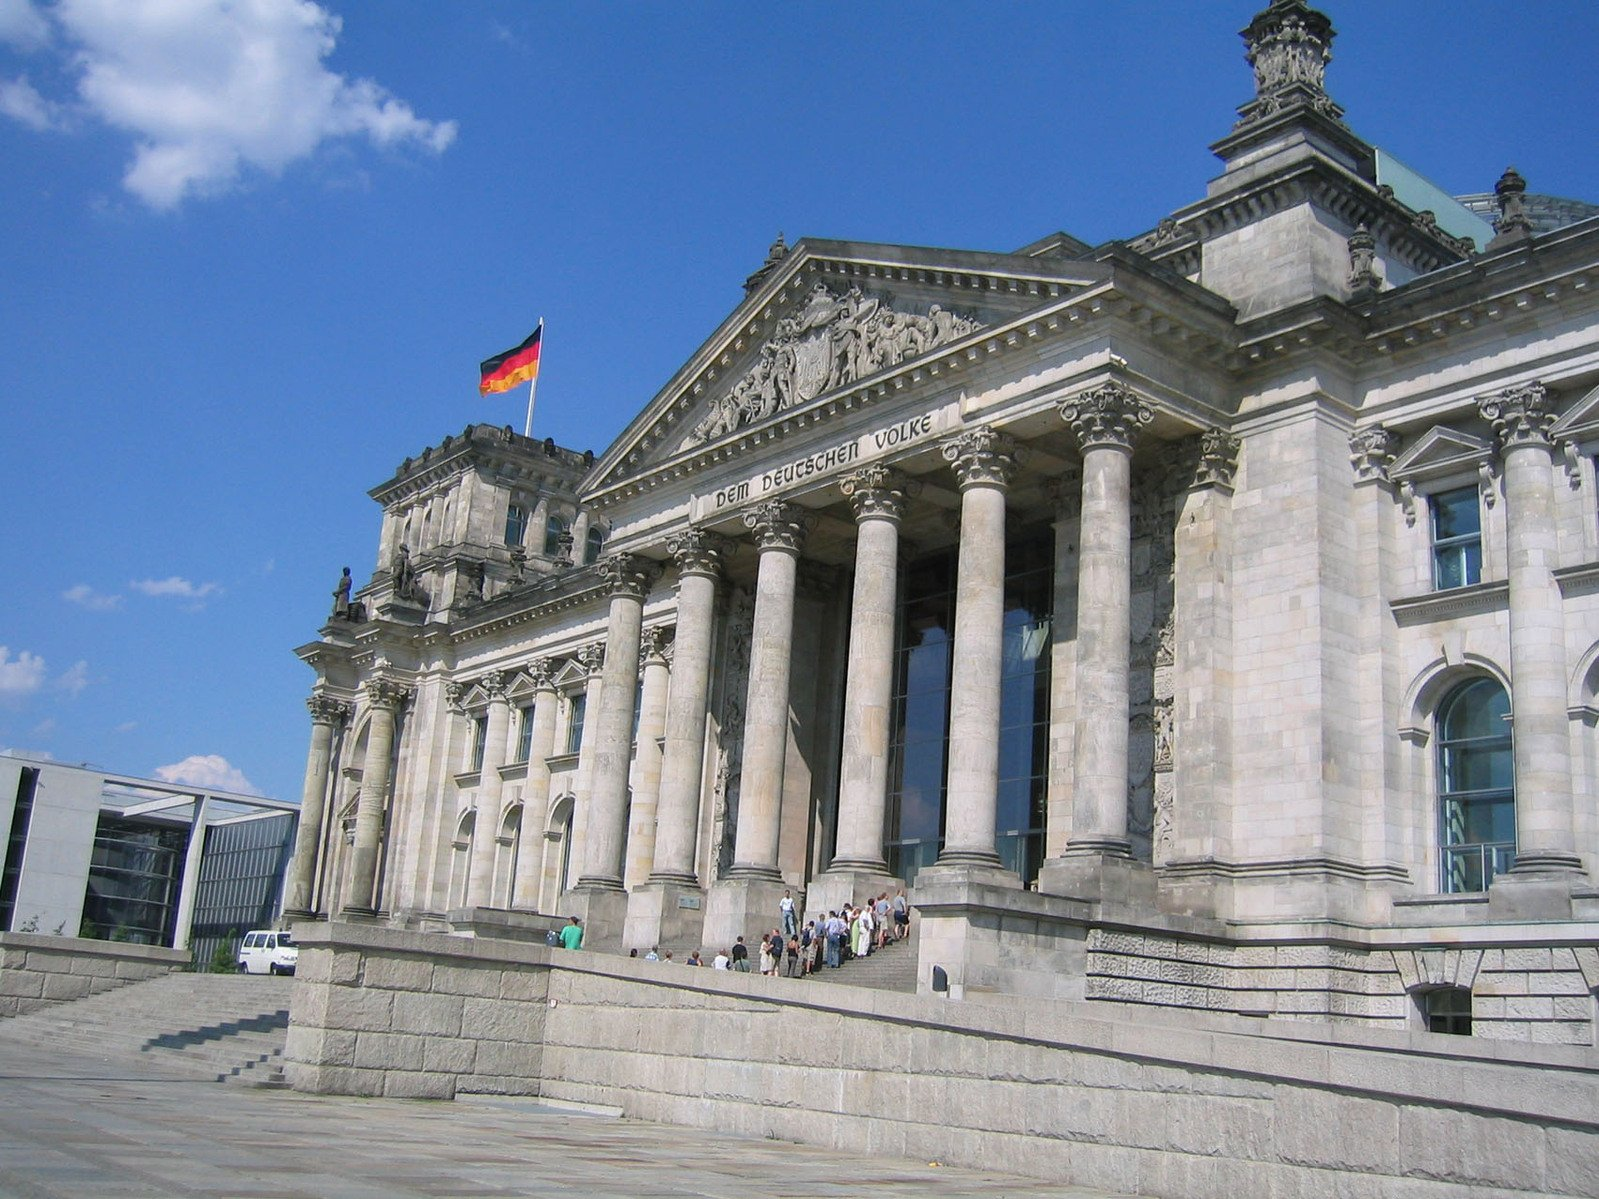 Germany's Reichstag